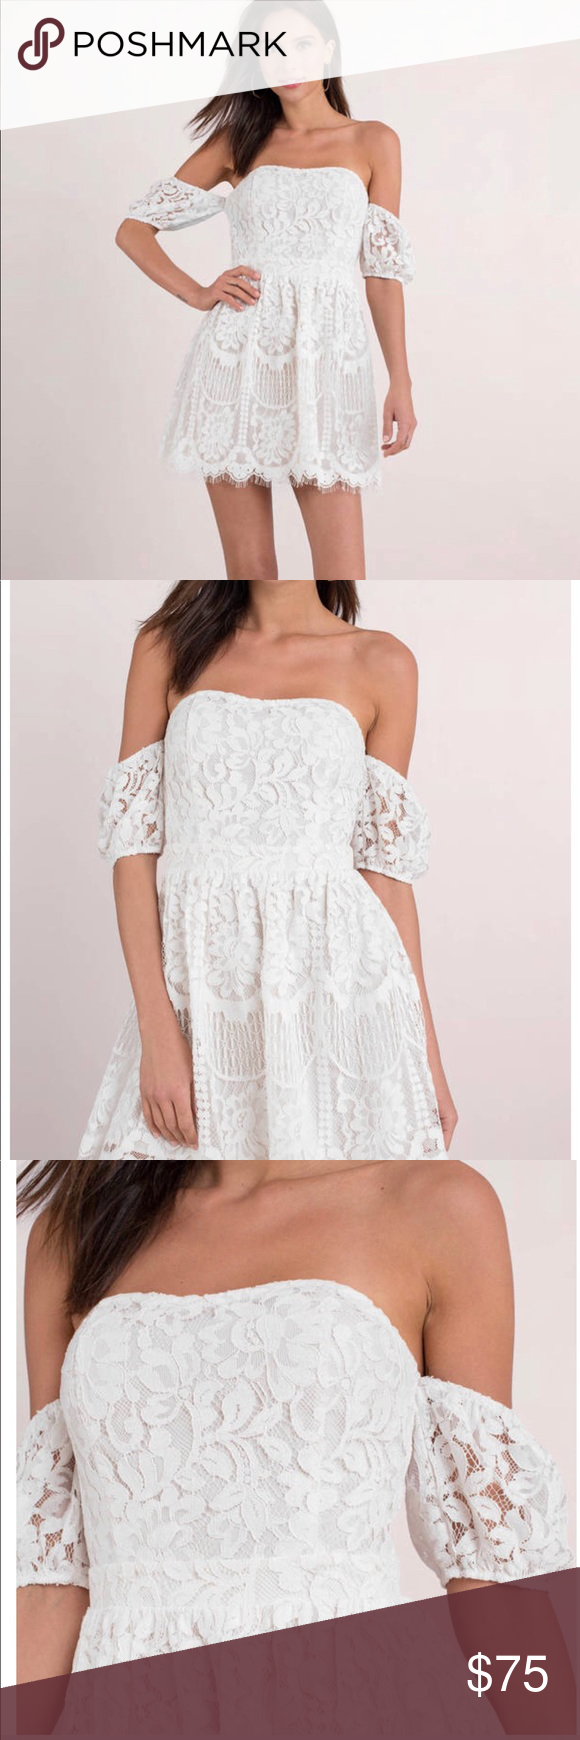 Nwt Tobi Off The Shoulder White Lace Dress This Dress Is A Beautiful Piece For Multiple Occasions Perfect For Anything Br Lace White Dress Lace Dress Dresses [ 1740 x 580 Pixel ]